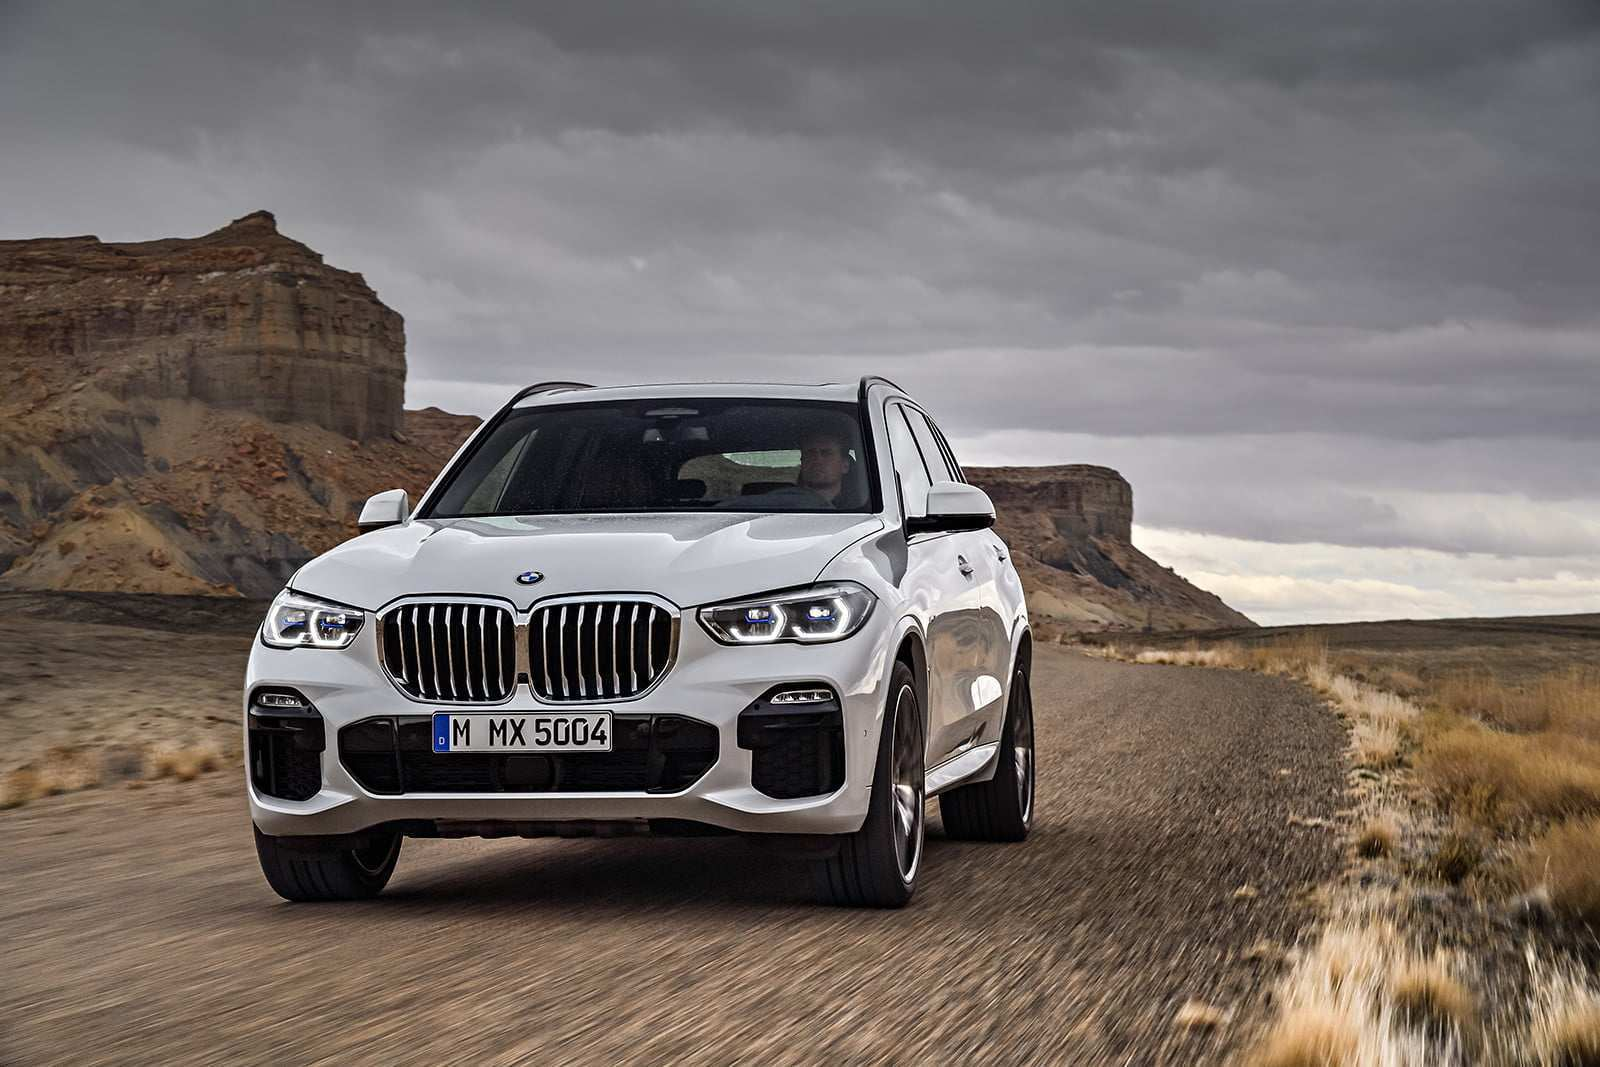 45 Gallery of 2019 Bmw X5 Release Date Style by 2019 Bmw X5 Release Date